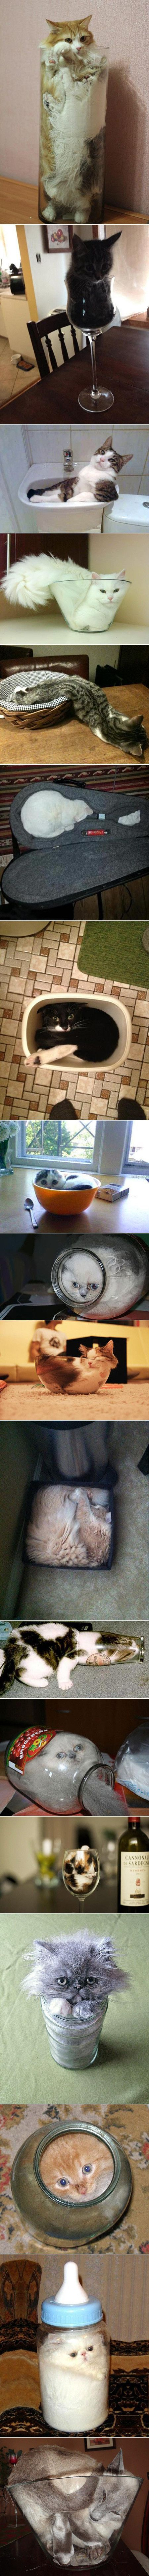 Images of the day -70 pics- Cats Are A Liquid (Compilation)